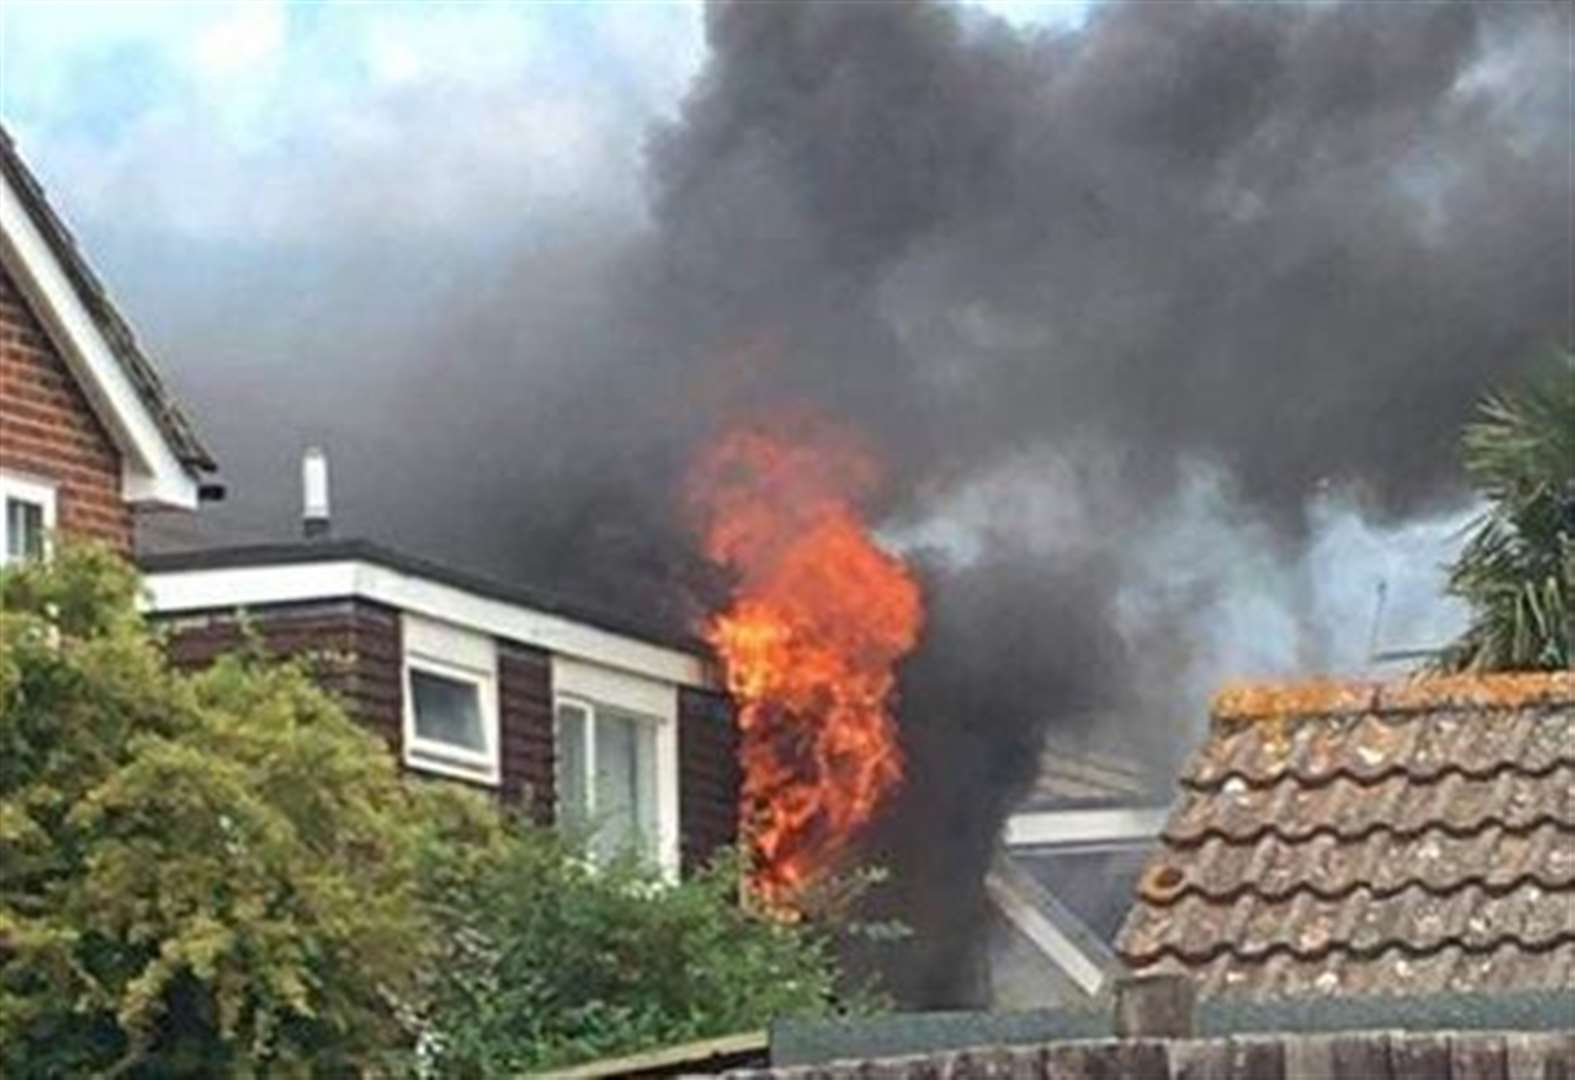 20 firefighters called to house blaze